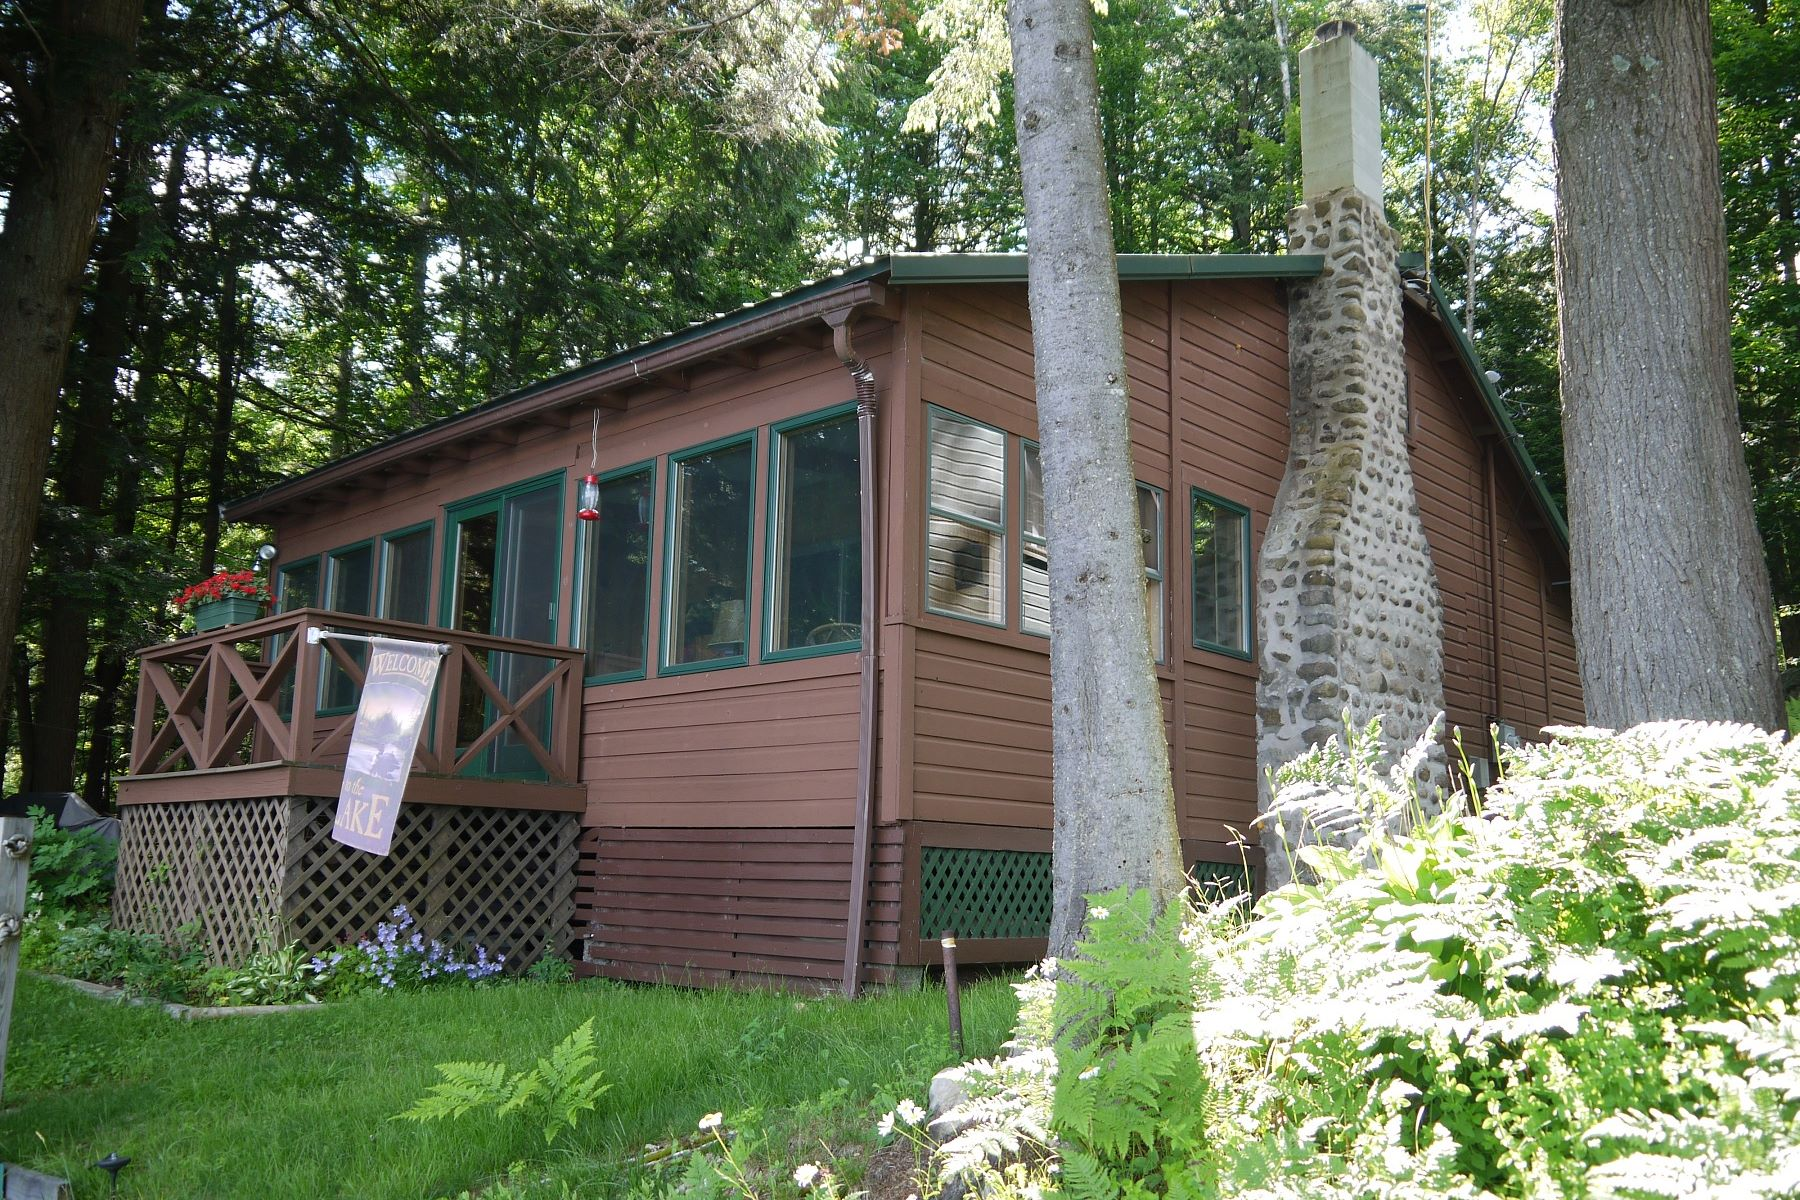 独户住宅 为 销售 在 Rustic seasonal camp with 60 feet of waterfront on serene Otter Lake 4251 Lakeview Rd Forestport, 纽约州 13494 美国